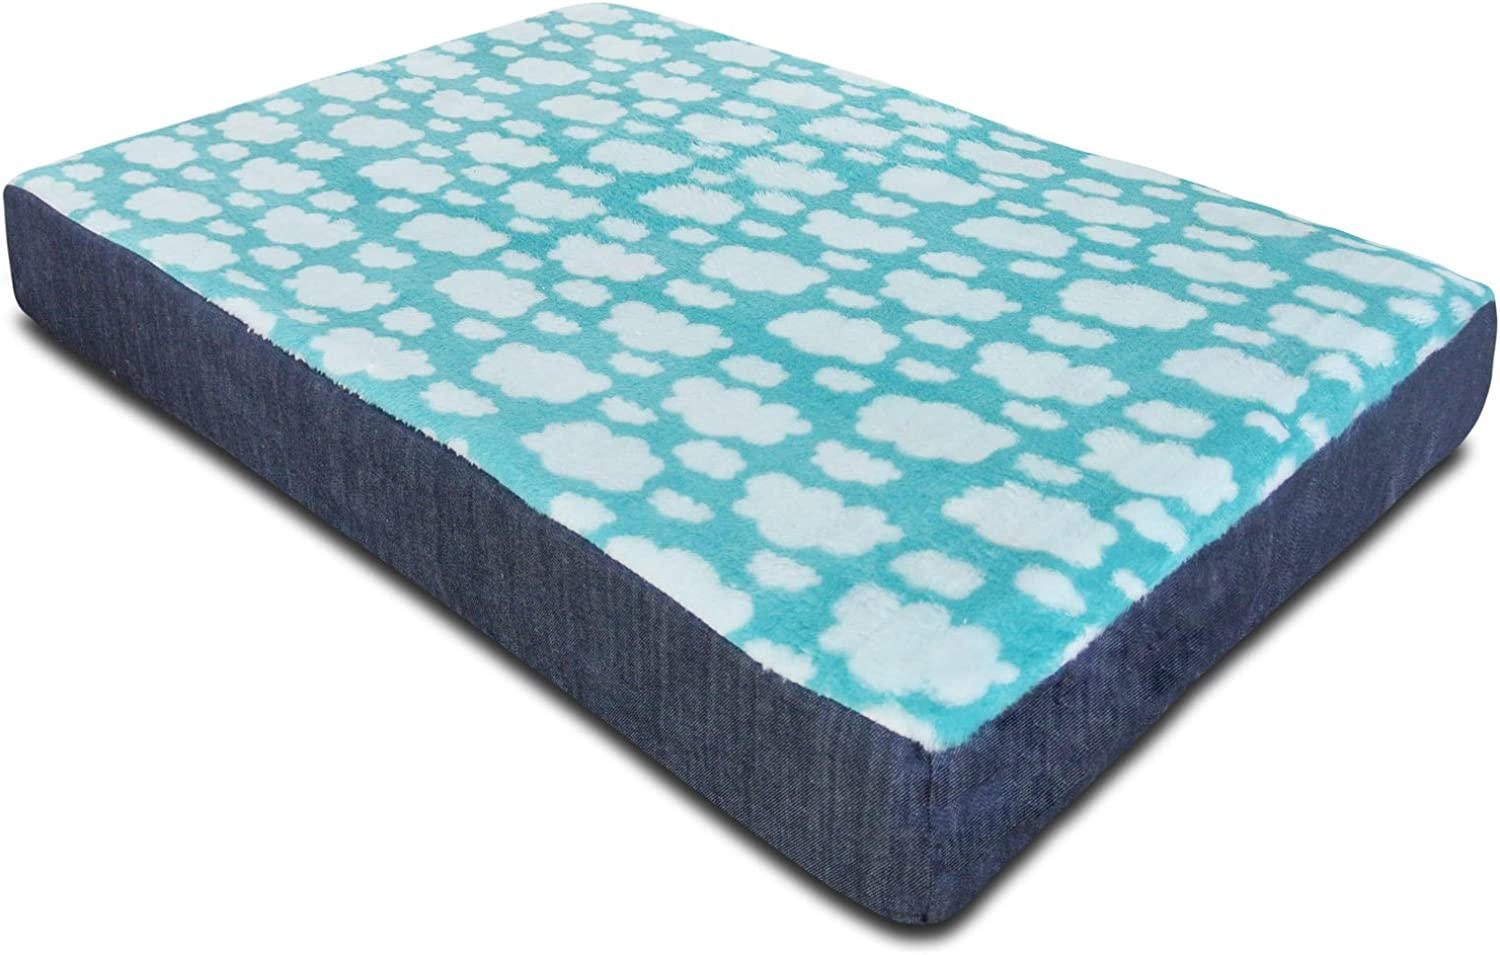 Baldiflex Soft Bed Cushion for Dog and Cat Cloud h 5 cm